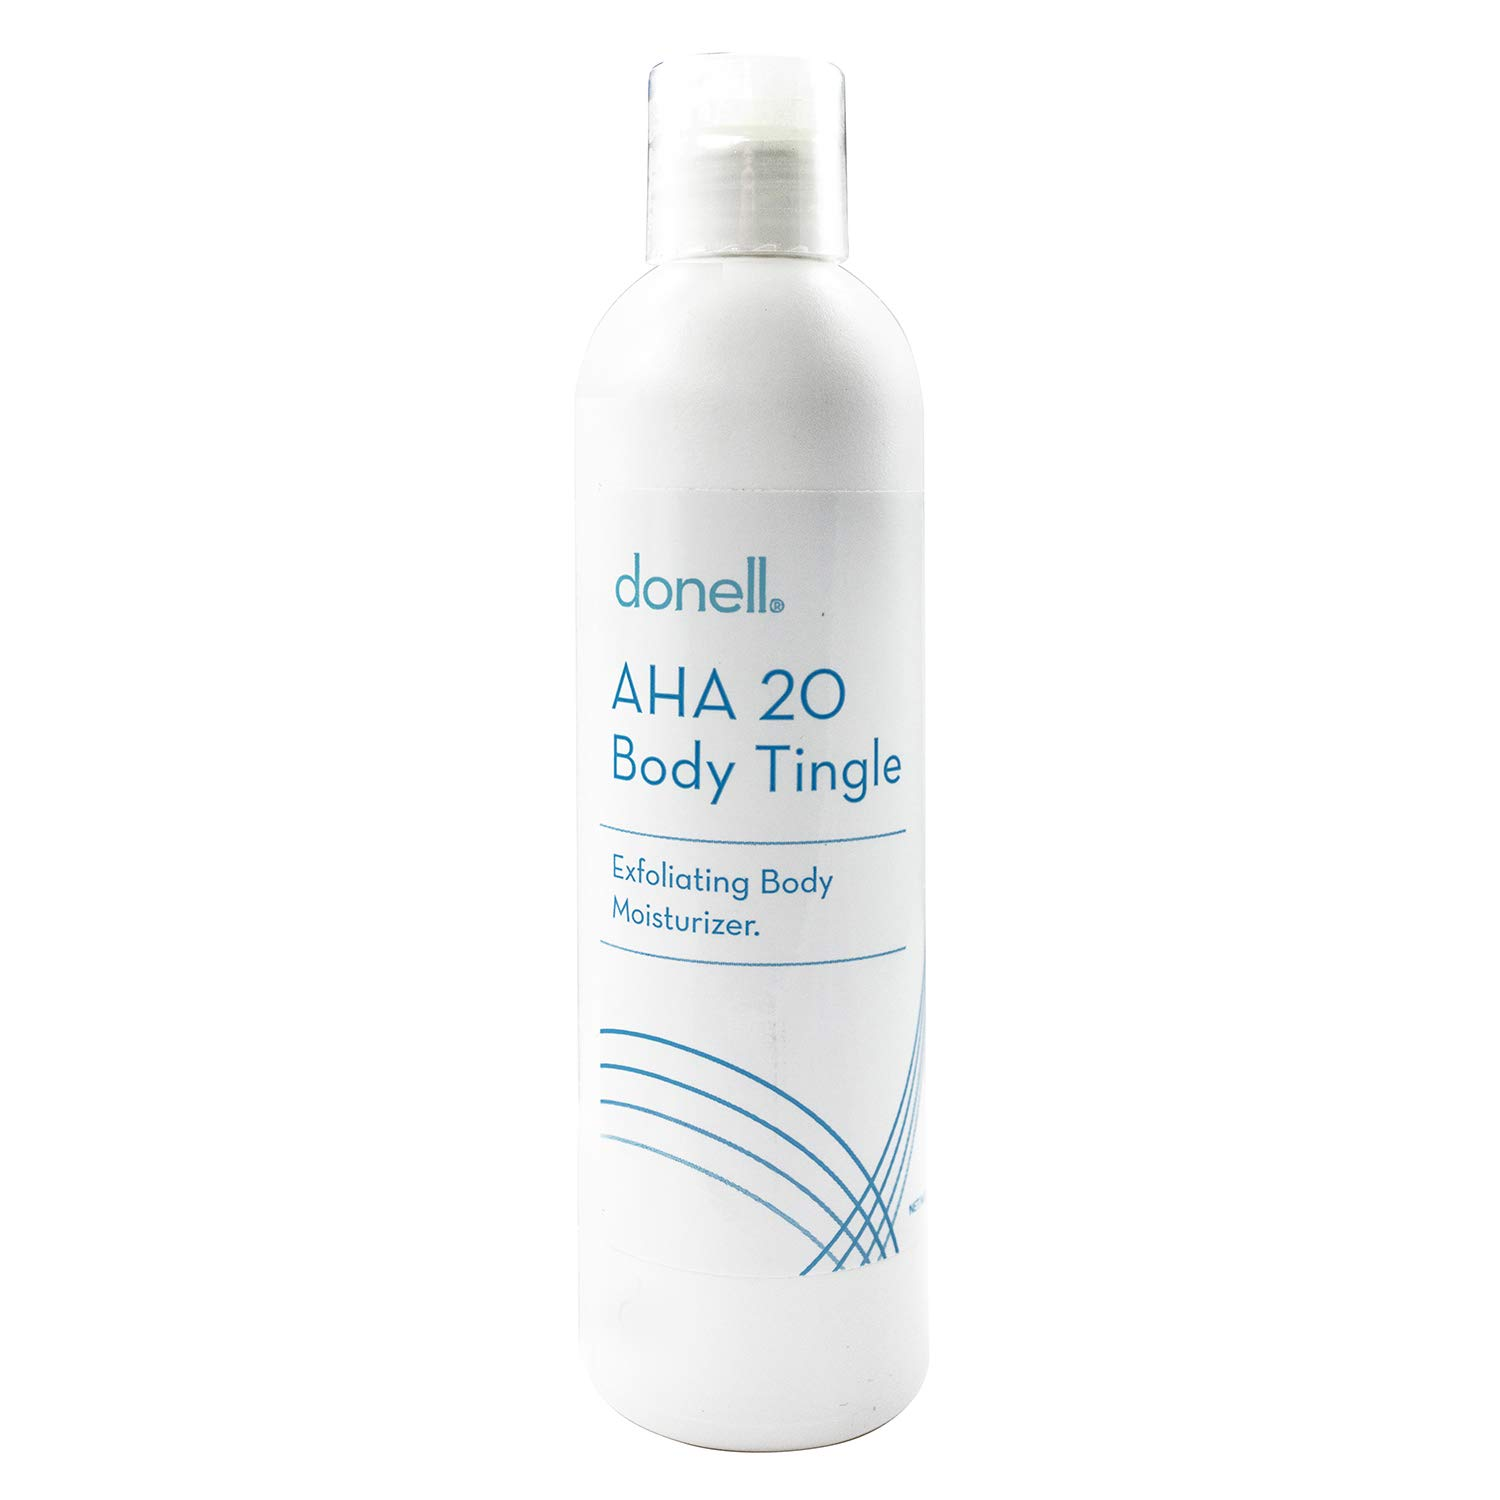 Donell AHA 20 Body Tingle